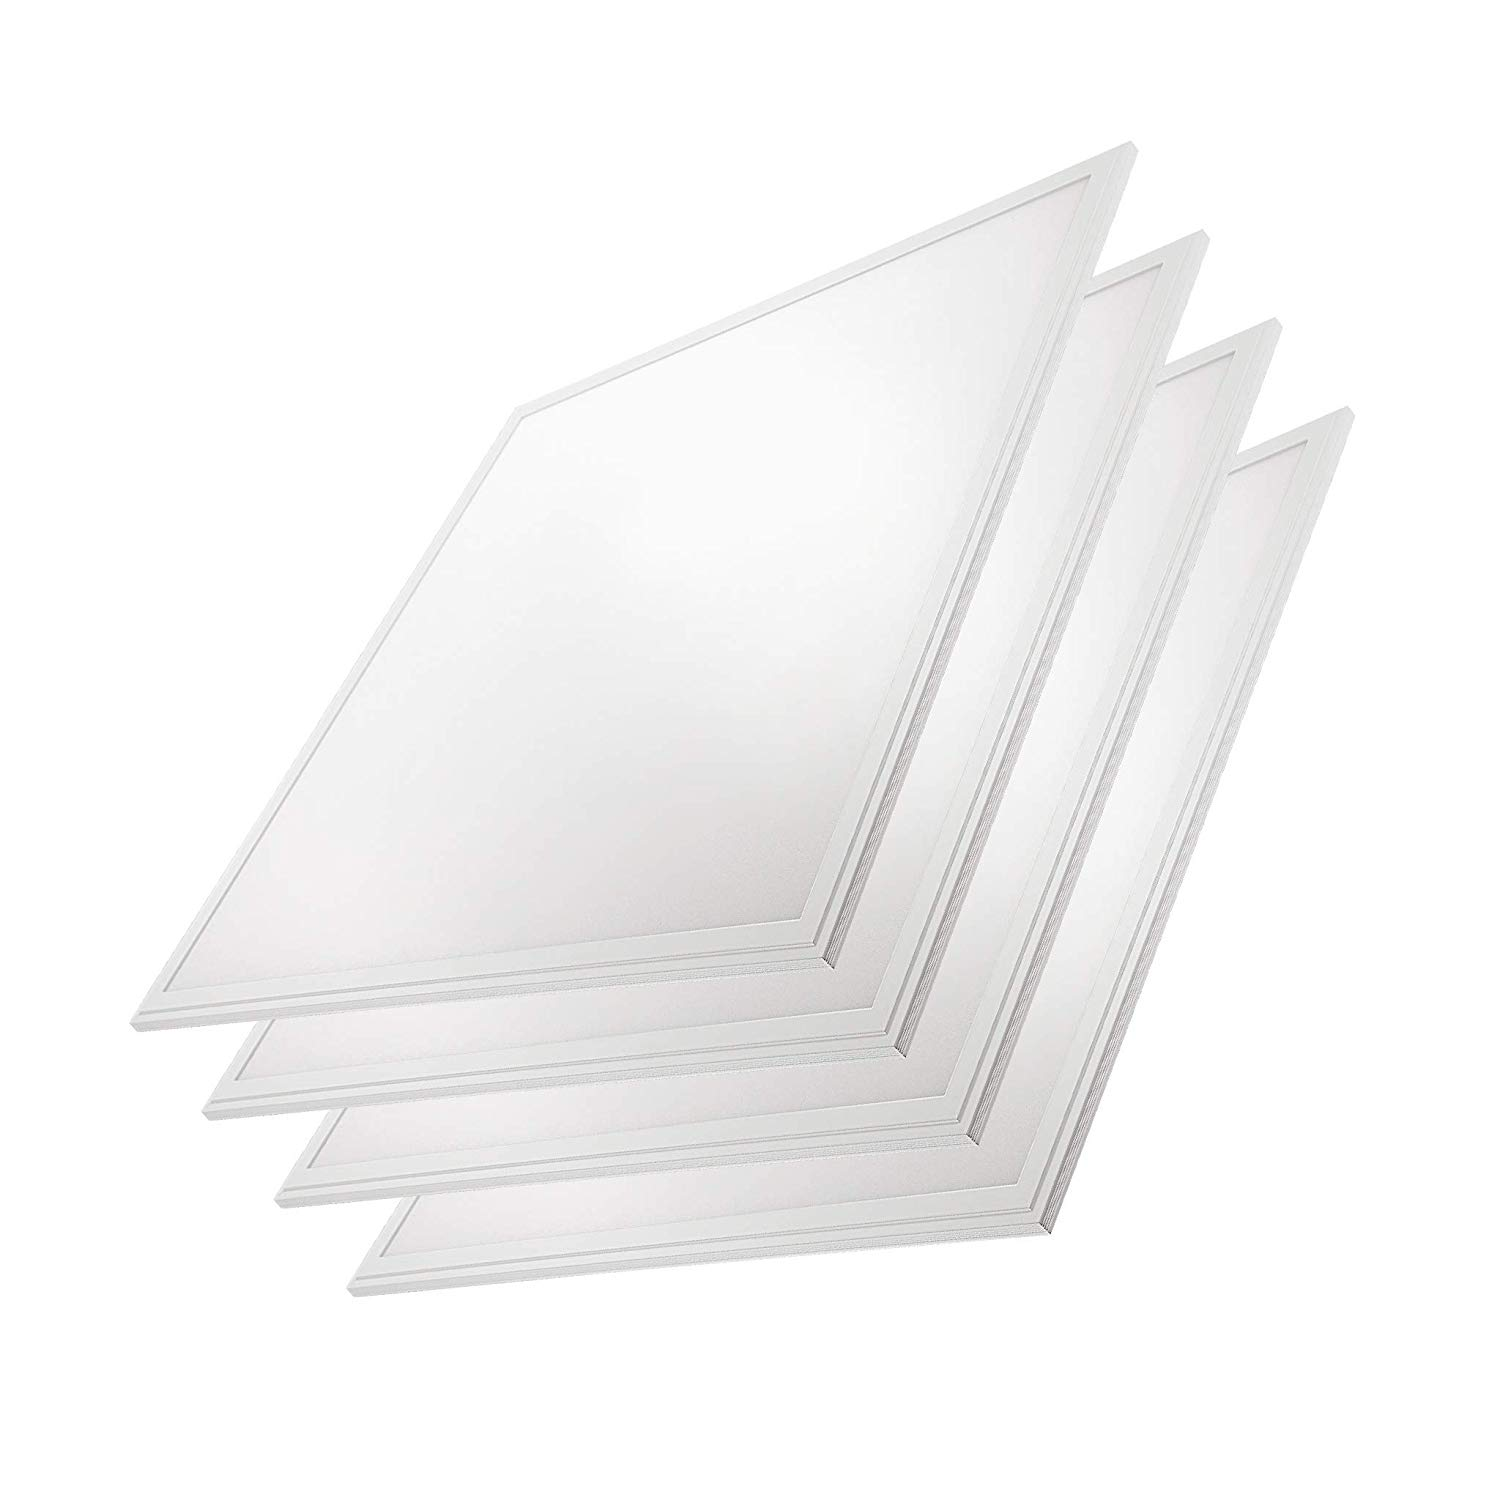 "2x2 Panel Troffer Edge-Lit Flat (4 PACK) 24"" x 24"" 40W; 4,600 Lumens= 115lm/w 120V-277V; 0-10V Dimmable; 5 Year Warranty; UL/DLC Listed; Day Light 5000K"